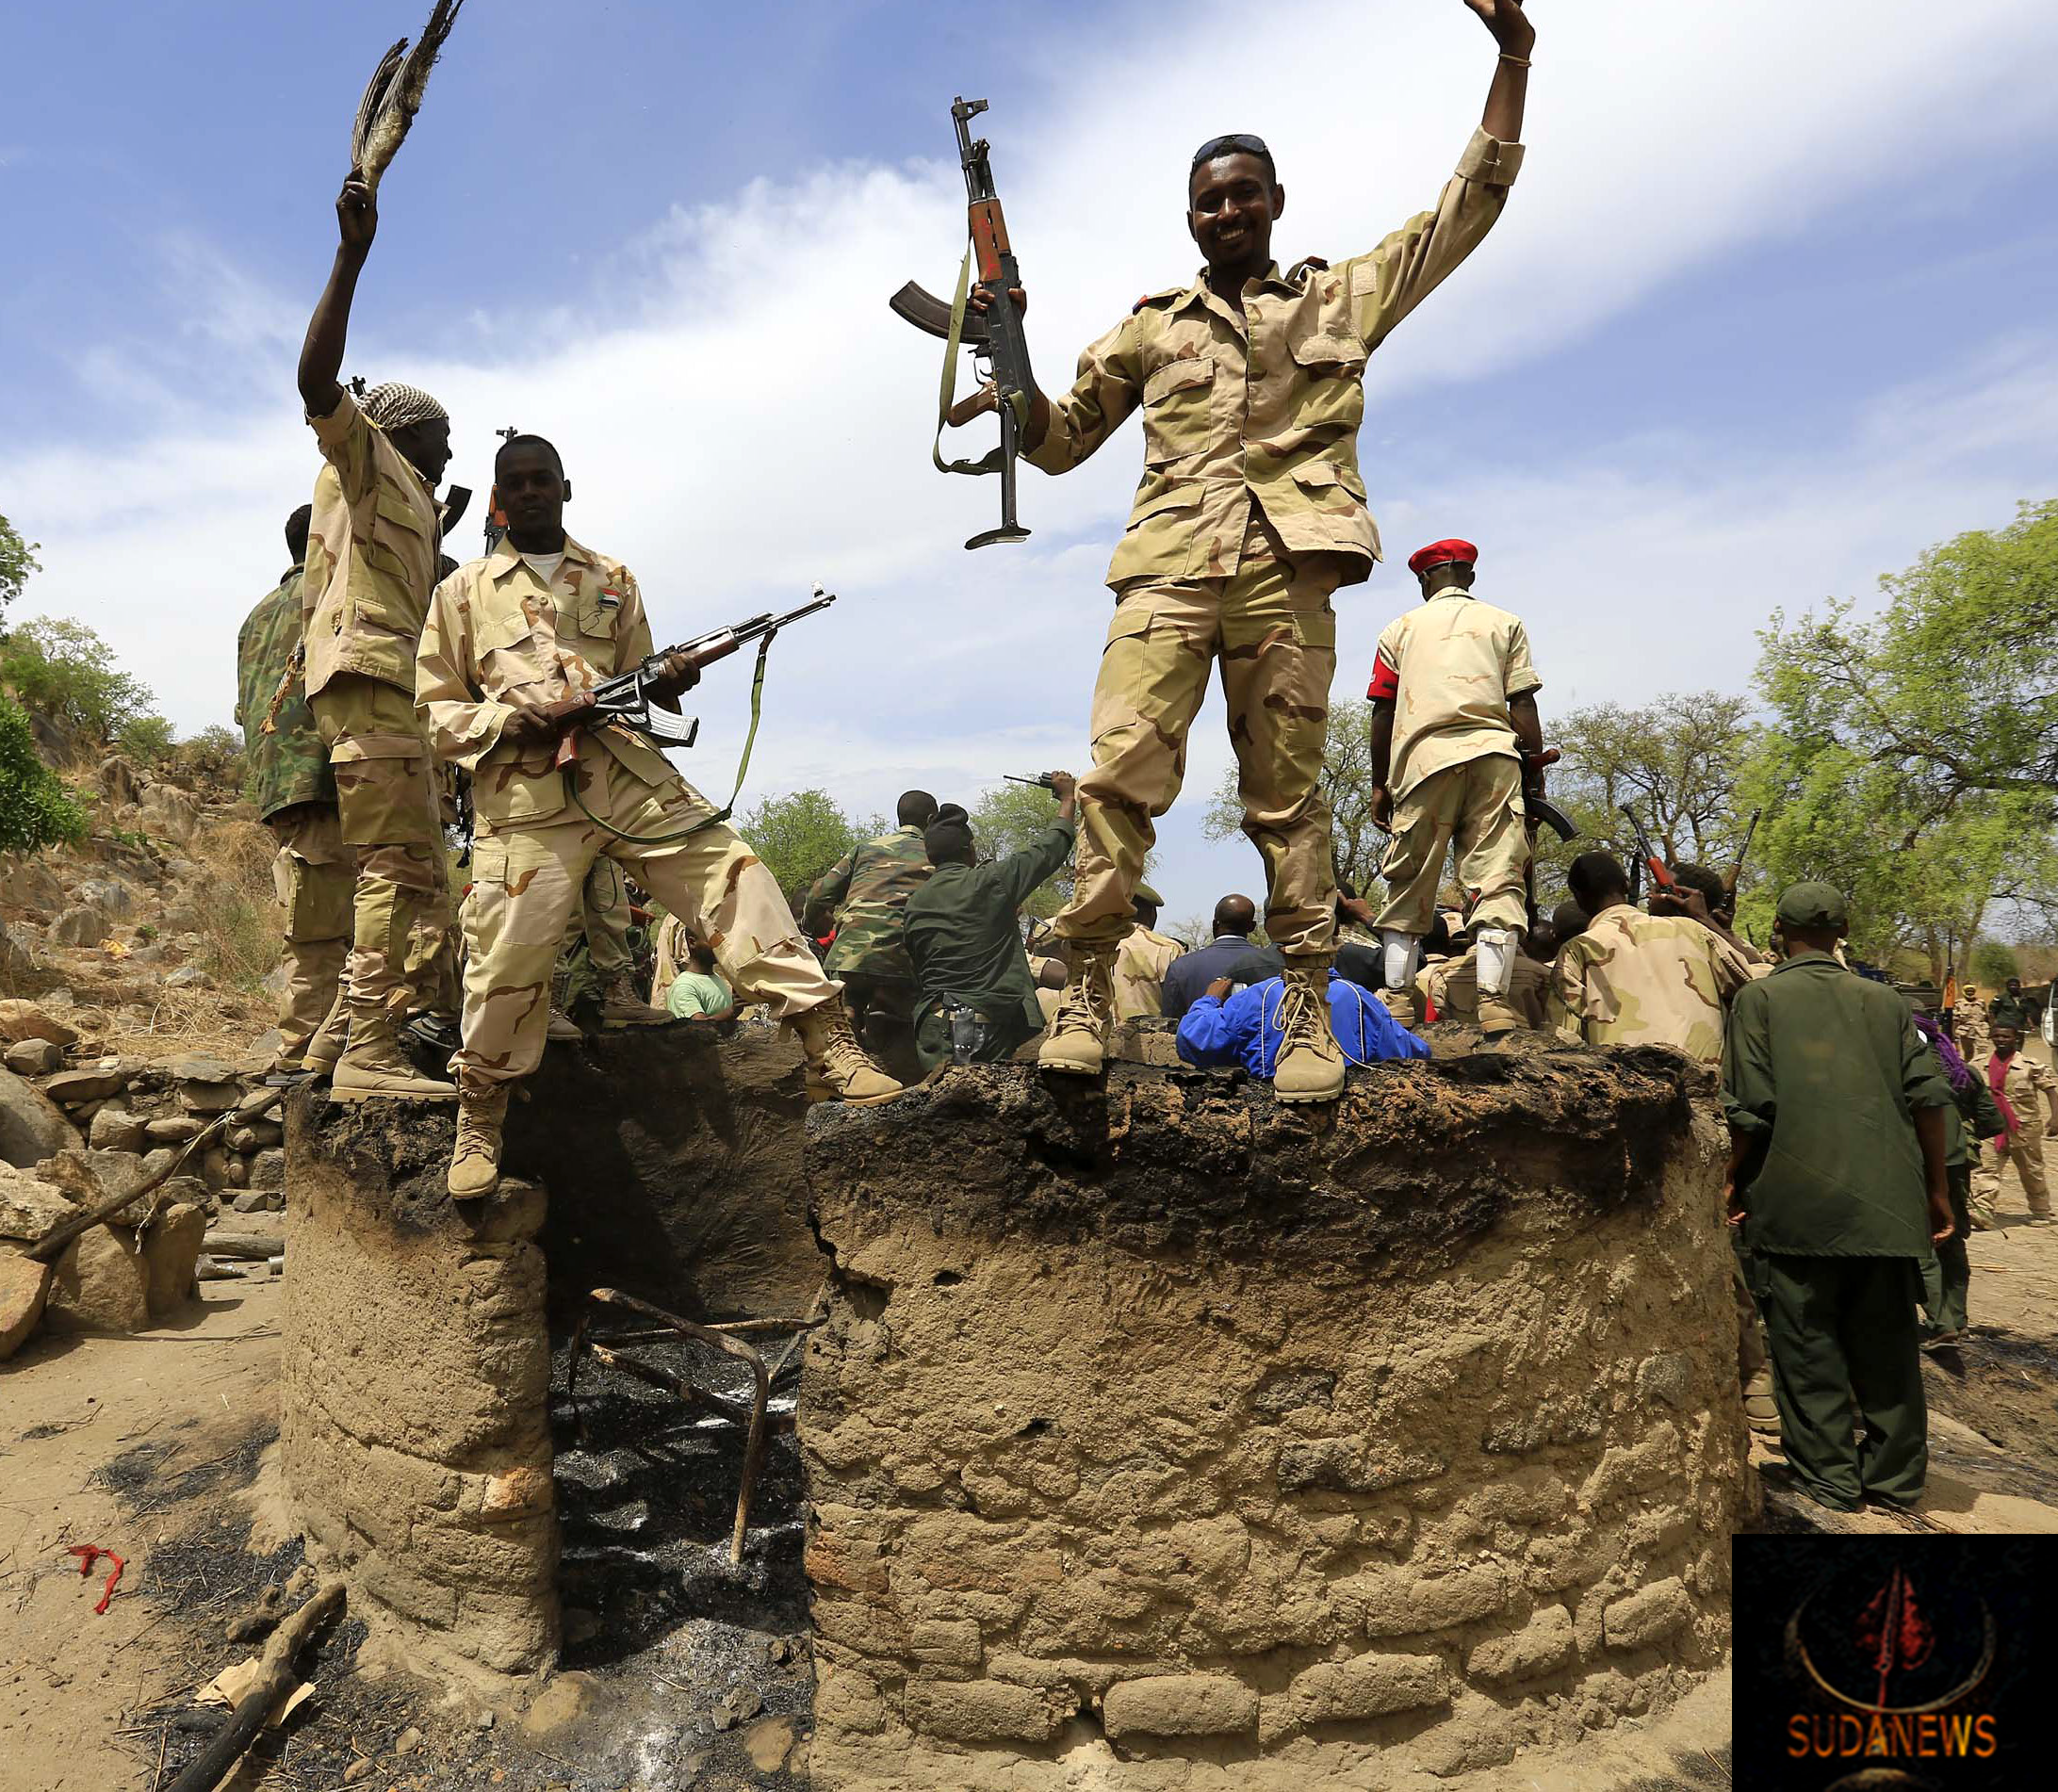 Members of the Rapid Support Forces celebrate their victory for the cameras while perched atop a burned dwelling in Sudan's South Kordofan state on May 20, 2014. STR/AFP/GETTY IMAGES